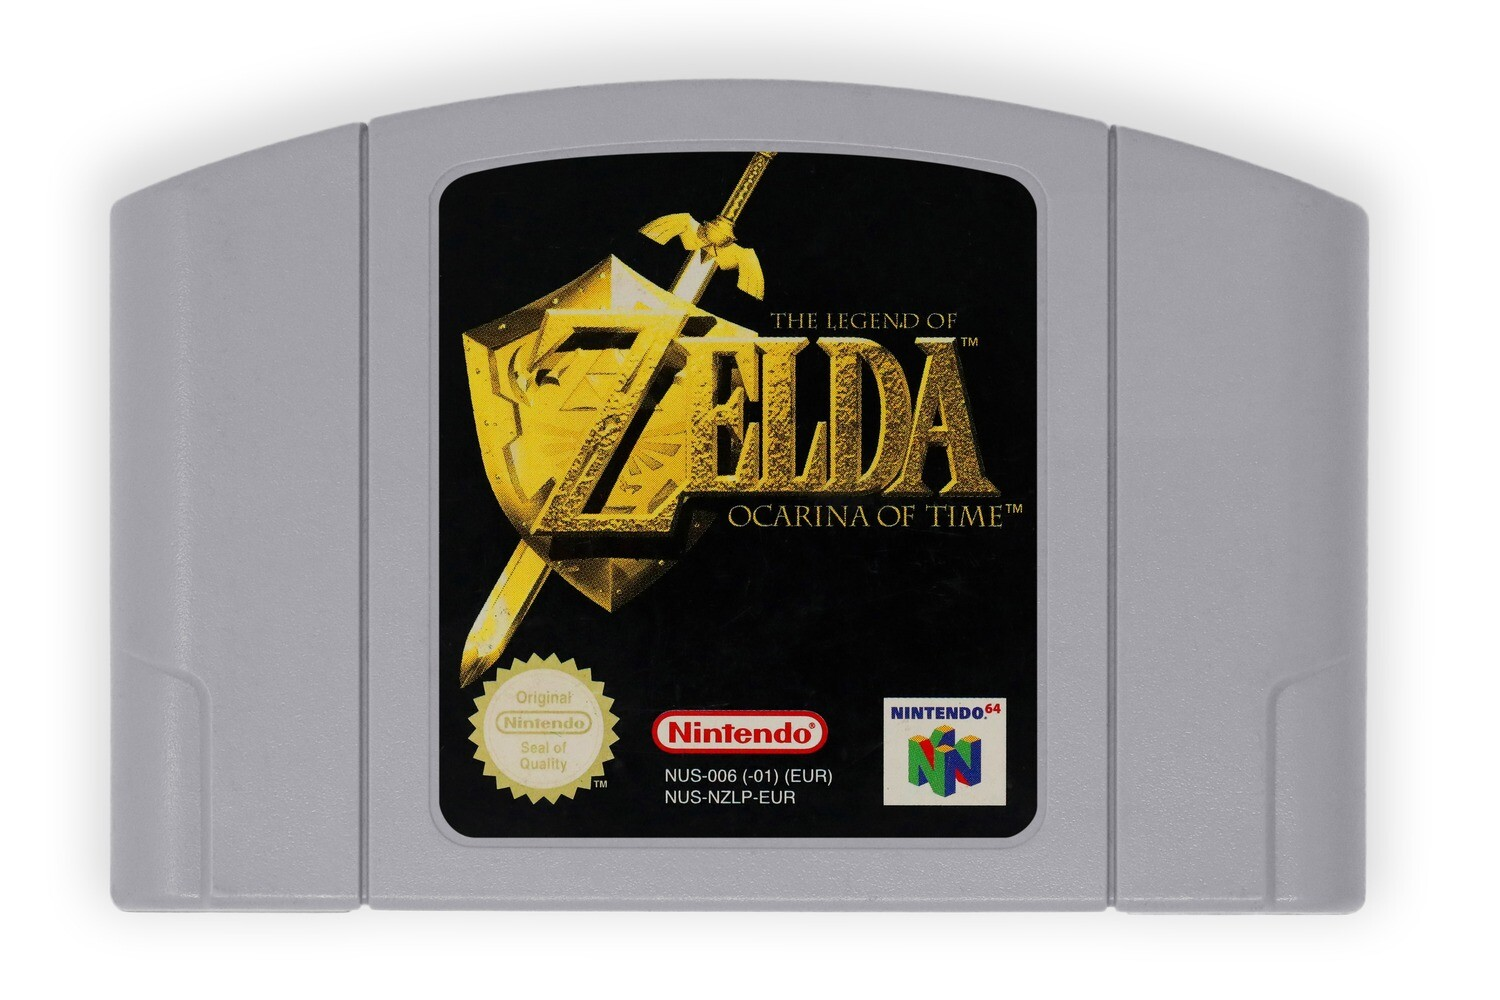 The Legend of Zelda: Ocarina of Time (N64 PAL)